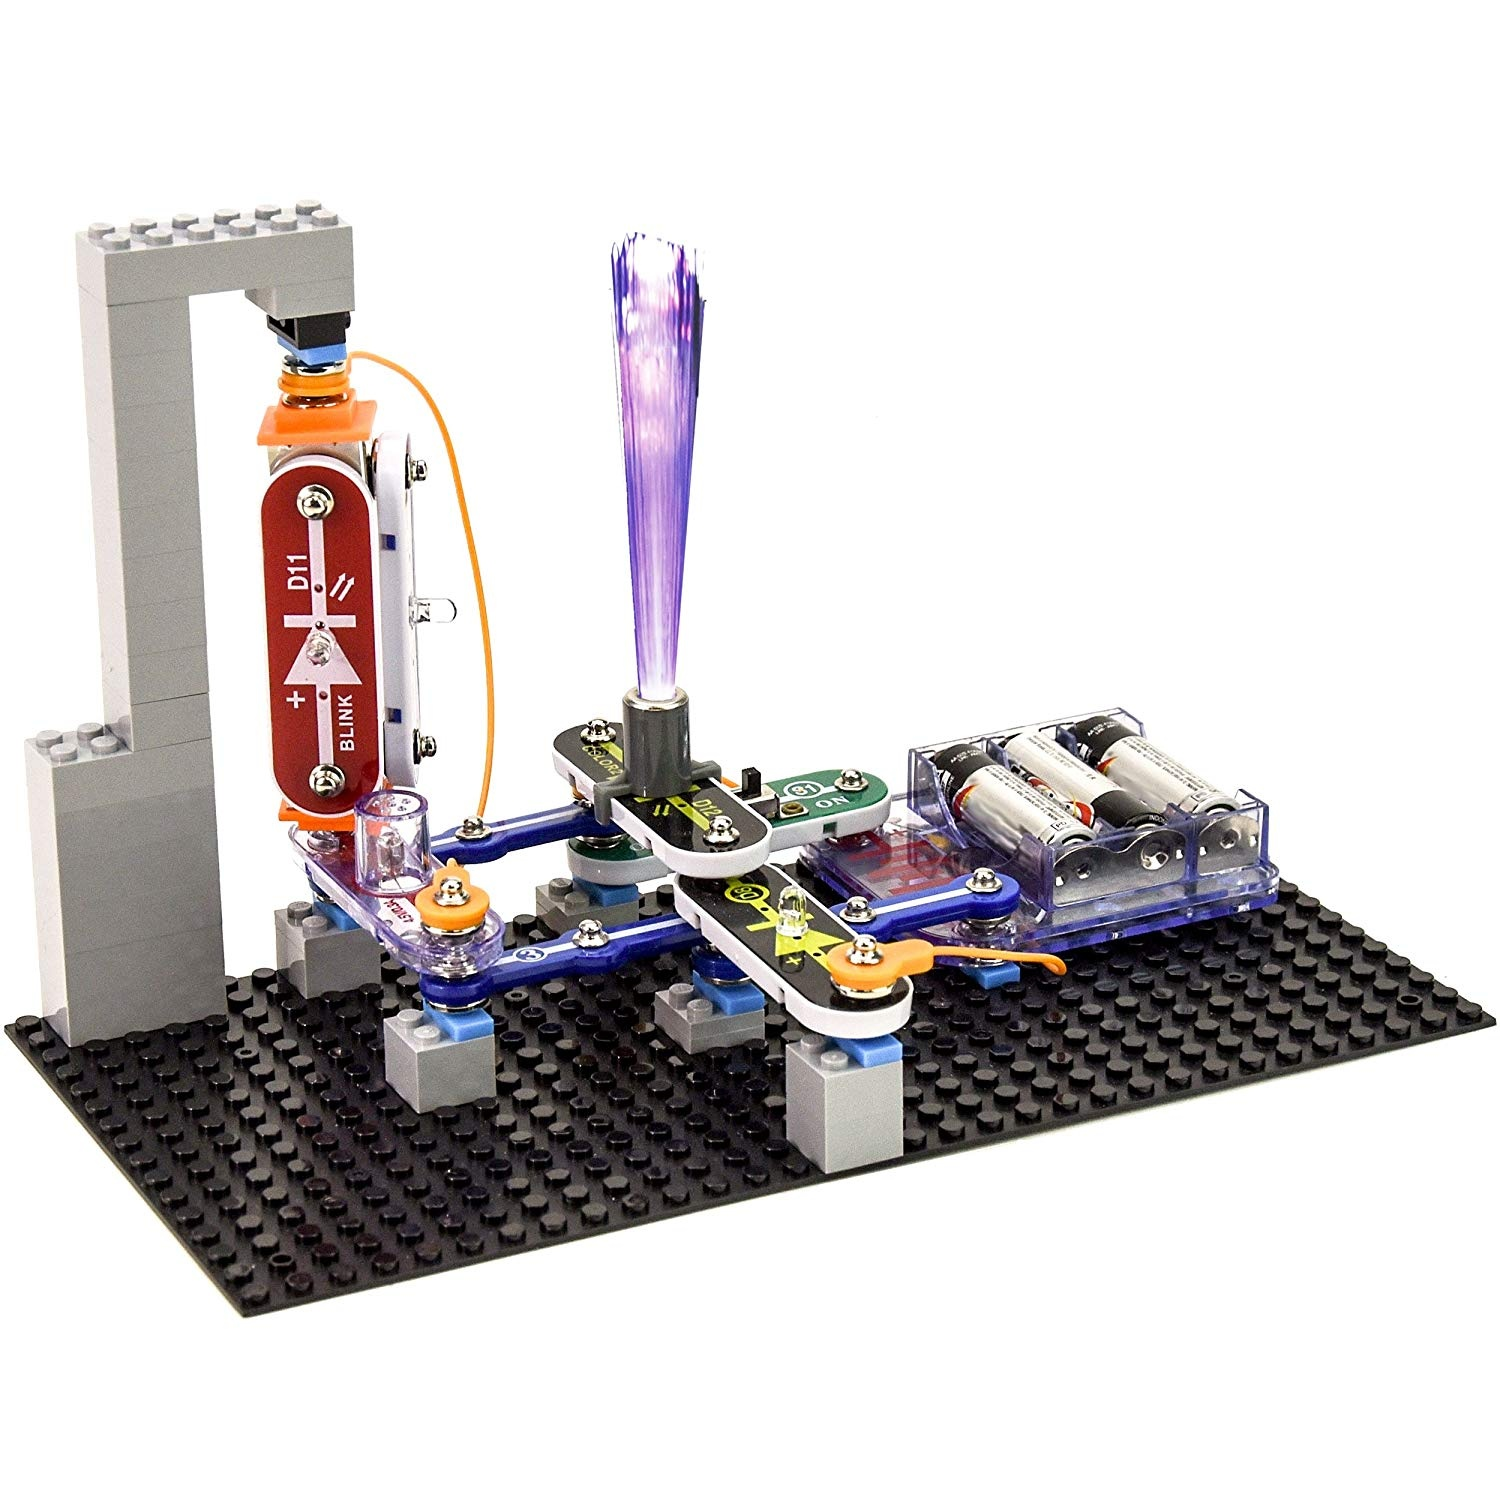 35d6a1655 Snap Circuits Bric Structures Electronics Exploration Kit, Grey by ...